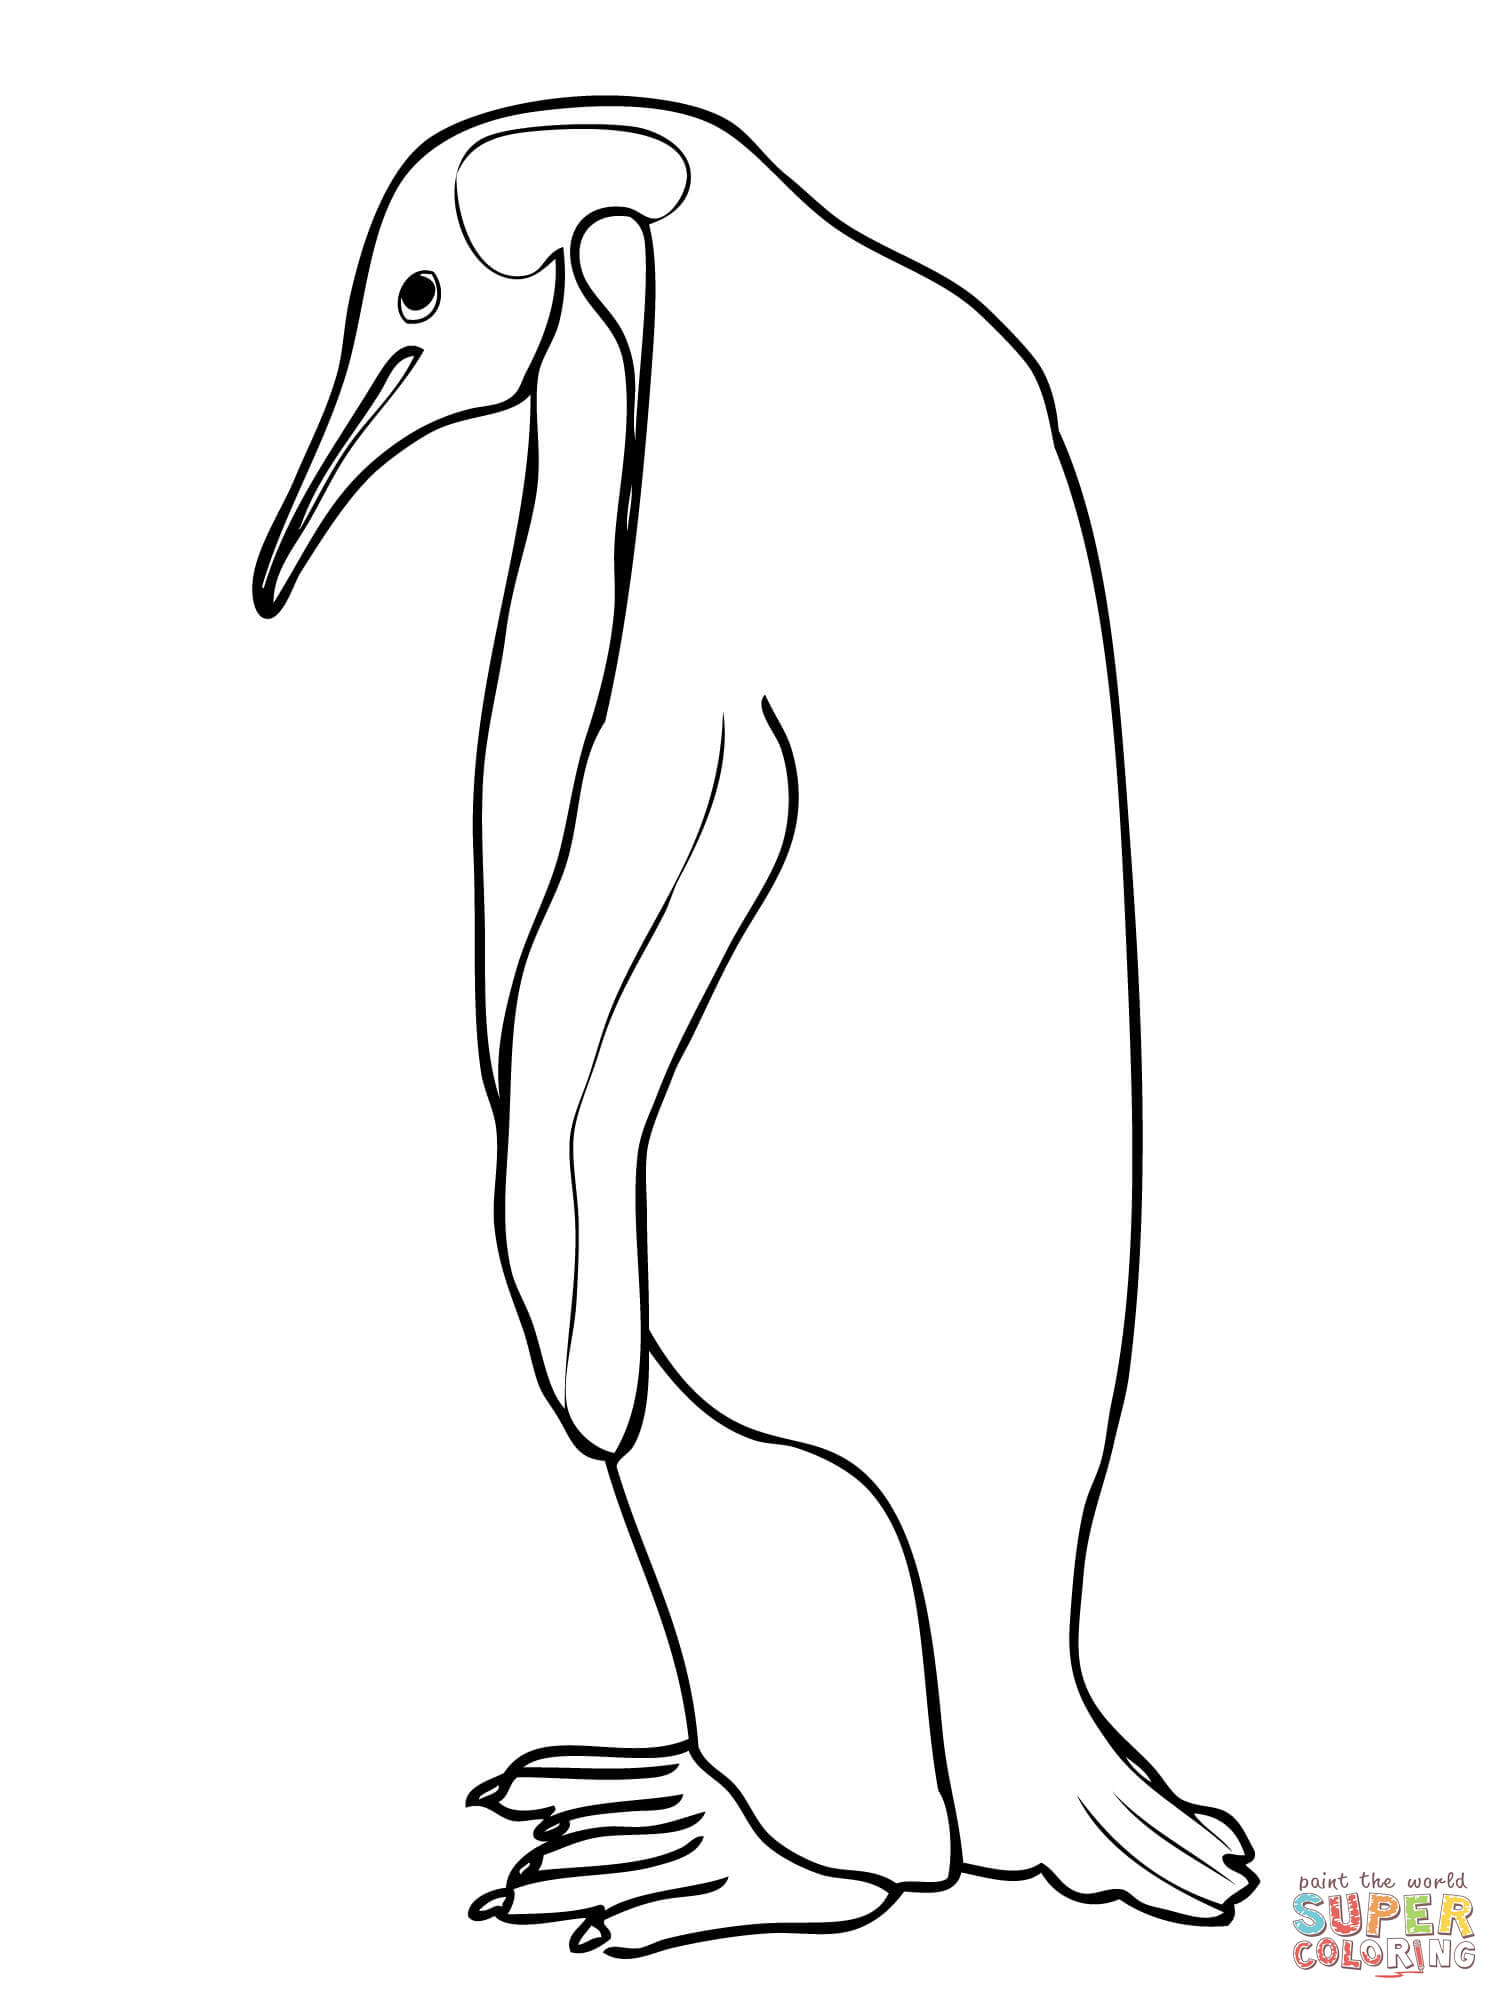 King Emperor Penguins coloring #8, Download drawings